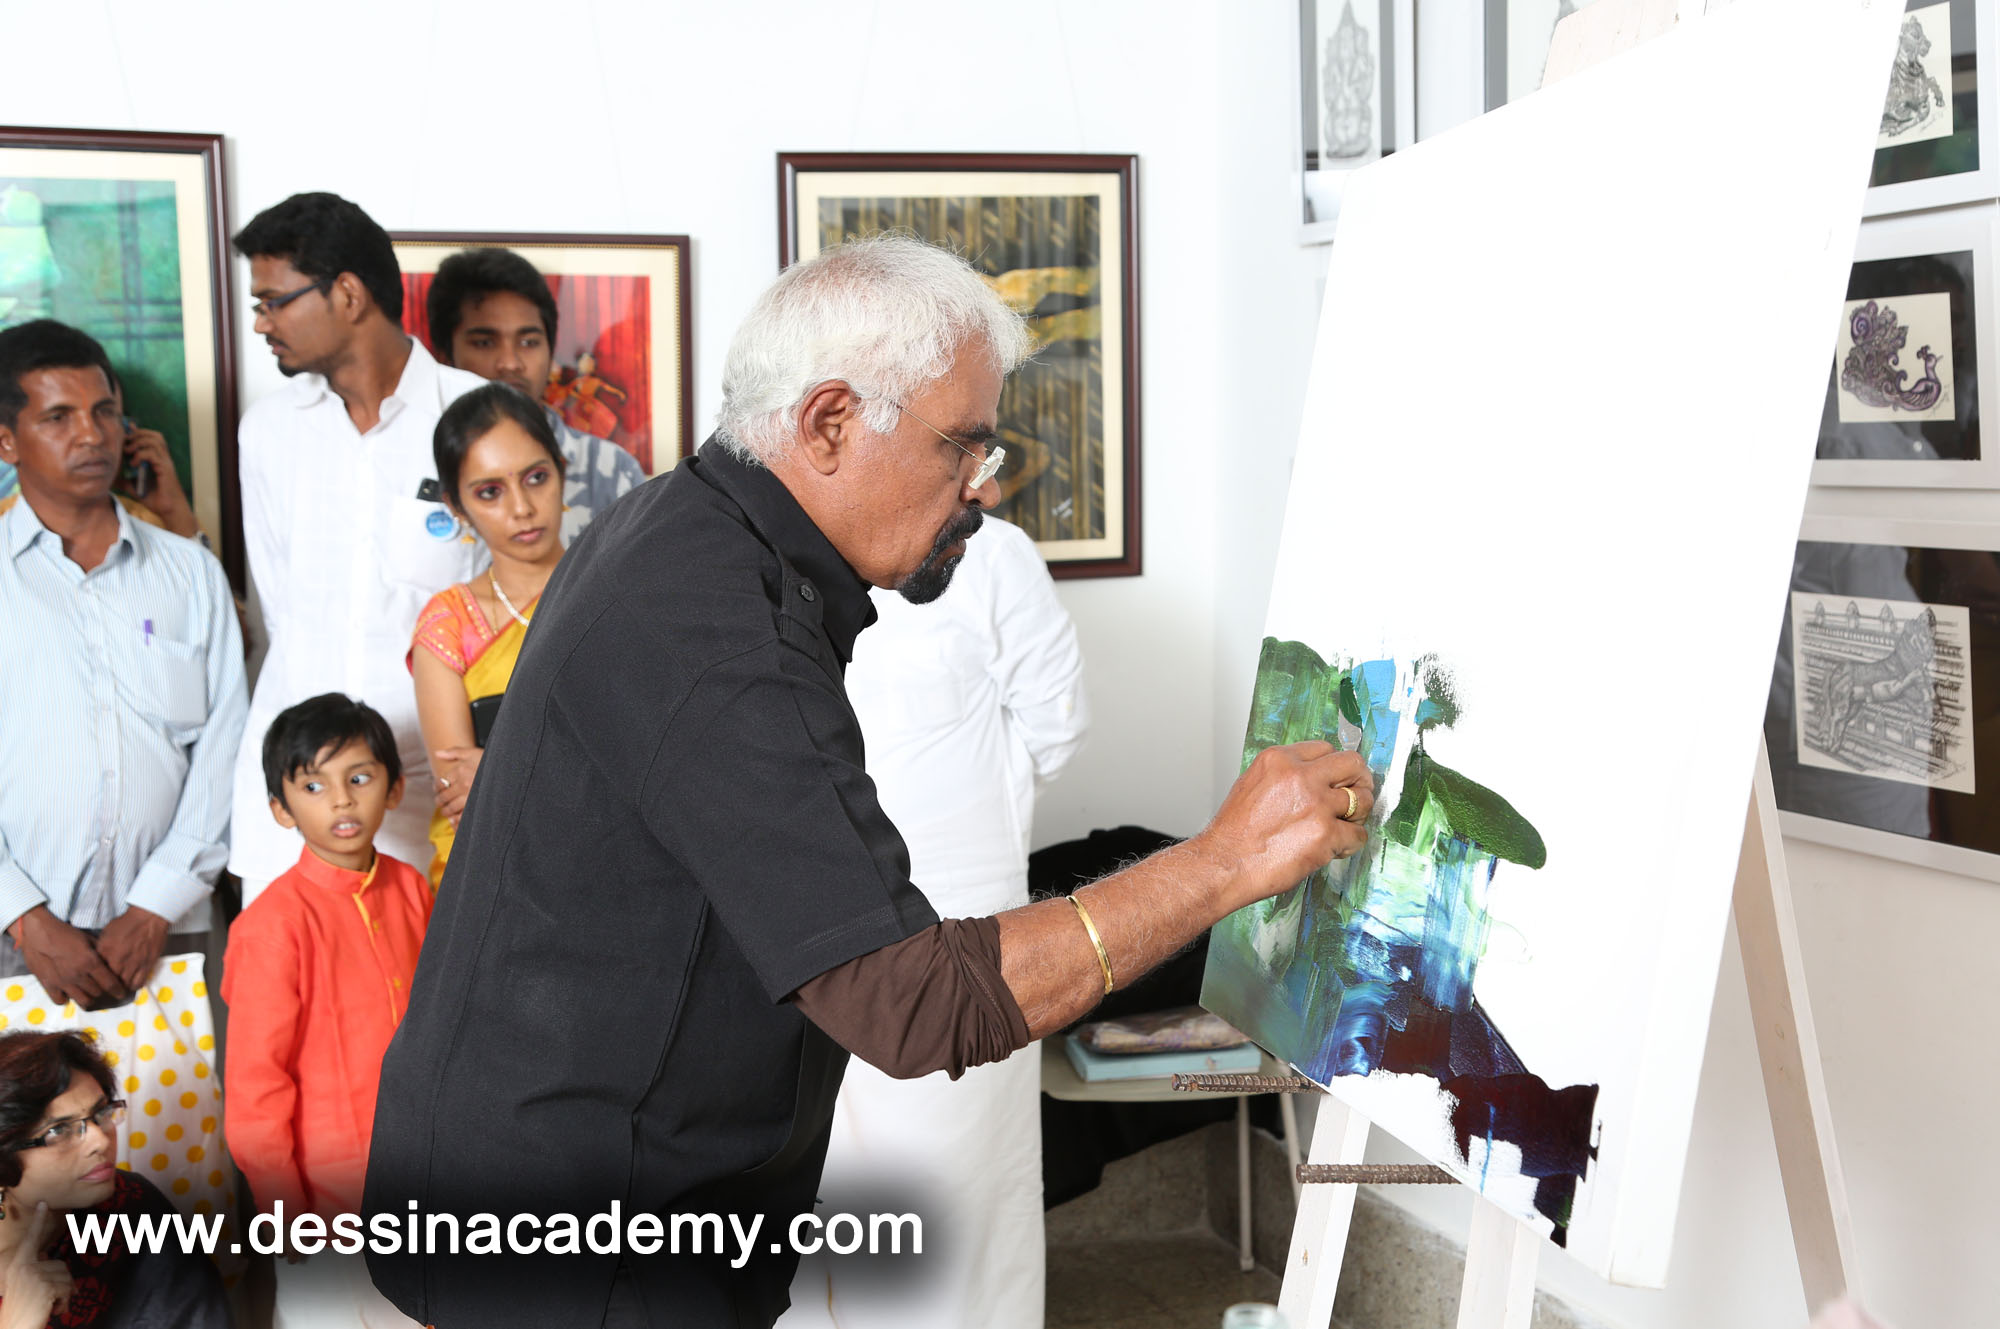 Dessin School of arts Event Gallery 2, Drawing School for adults in AdhanurMom s Care Play School